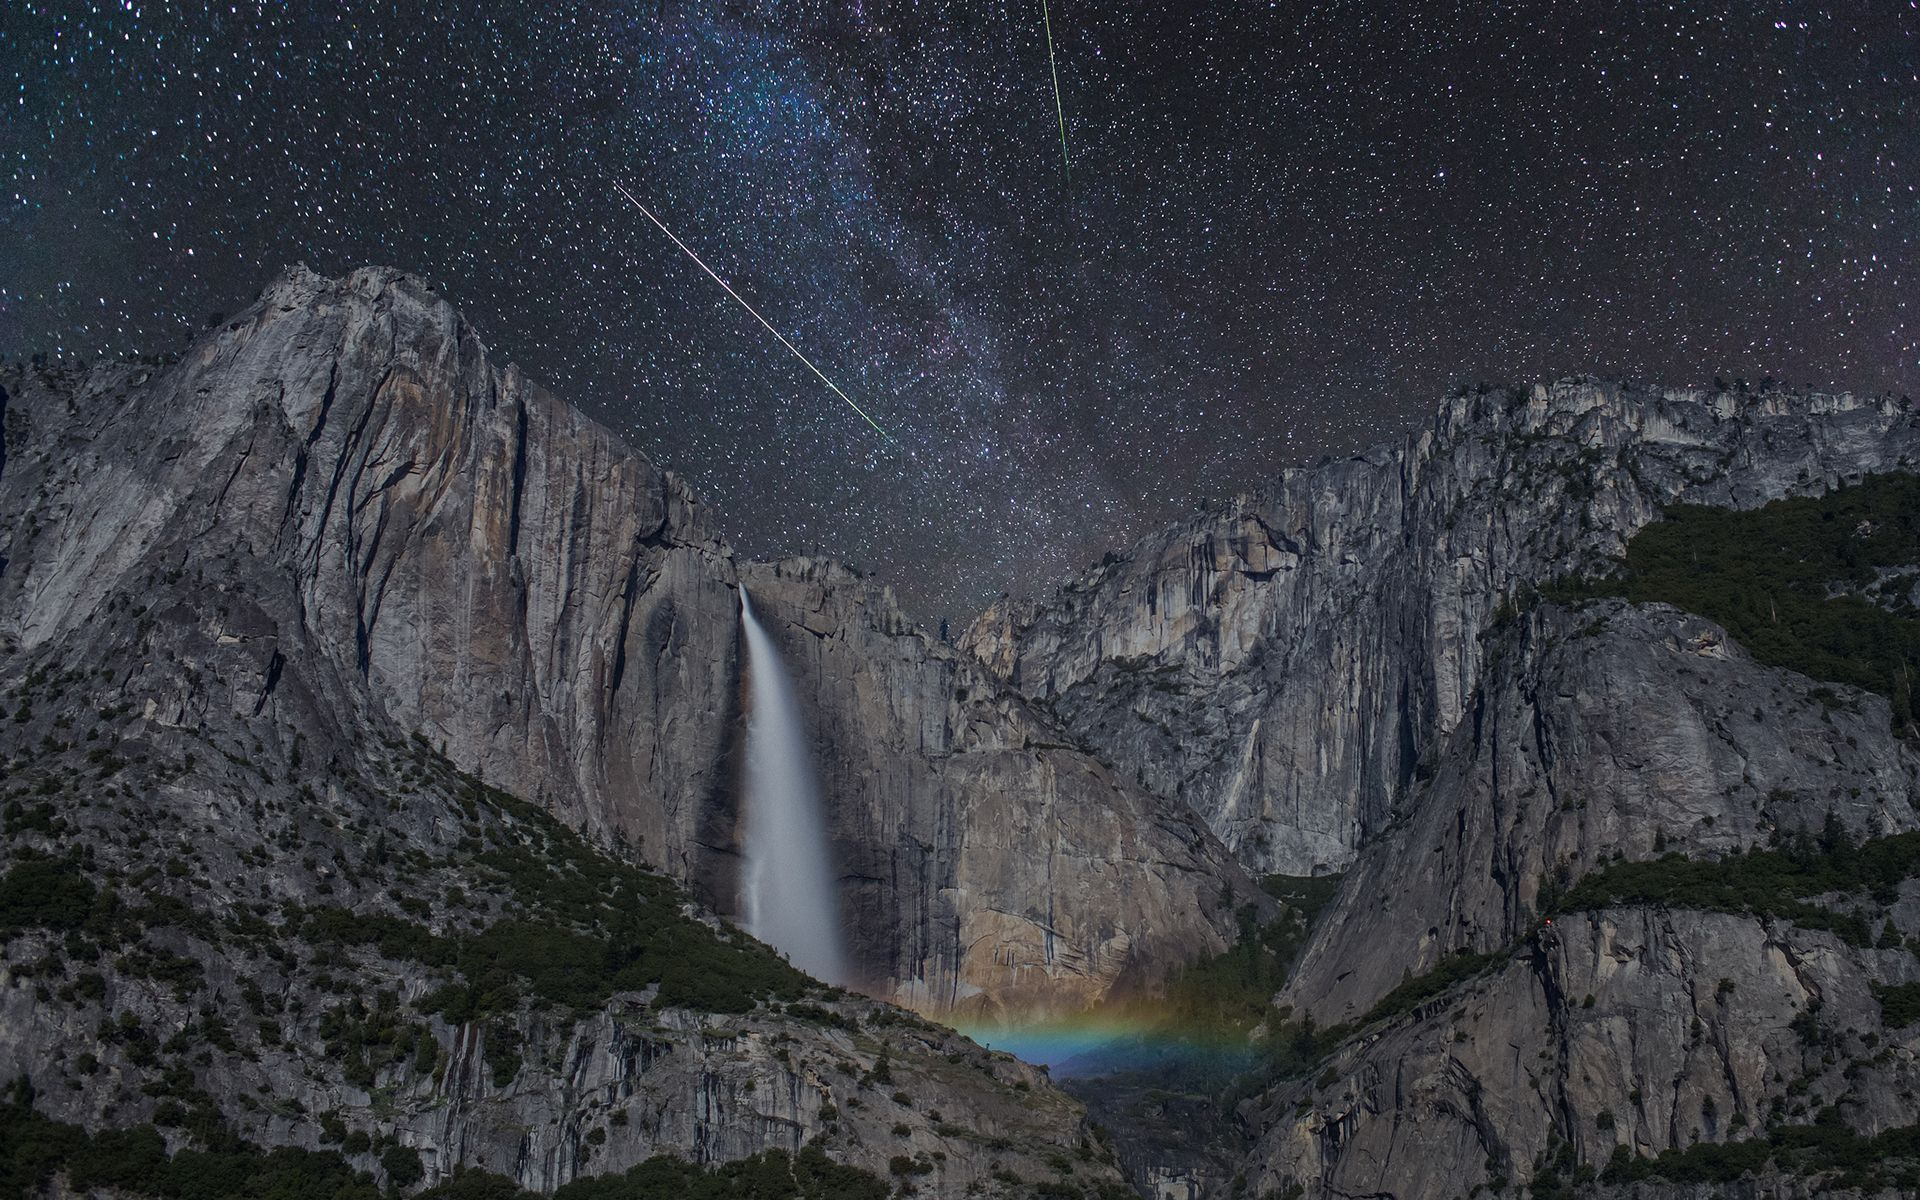 4k Wallpaper 3d National Geographic Yosemite Wallpapers Hd Pixelstalk Net